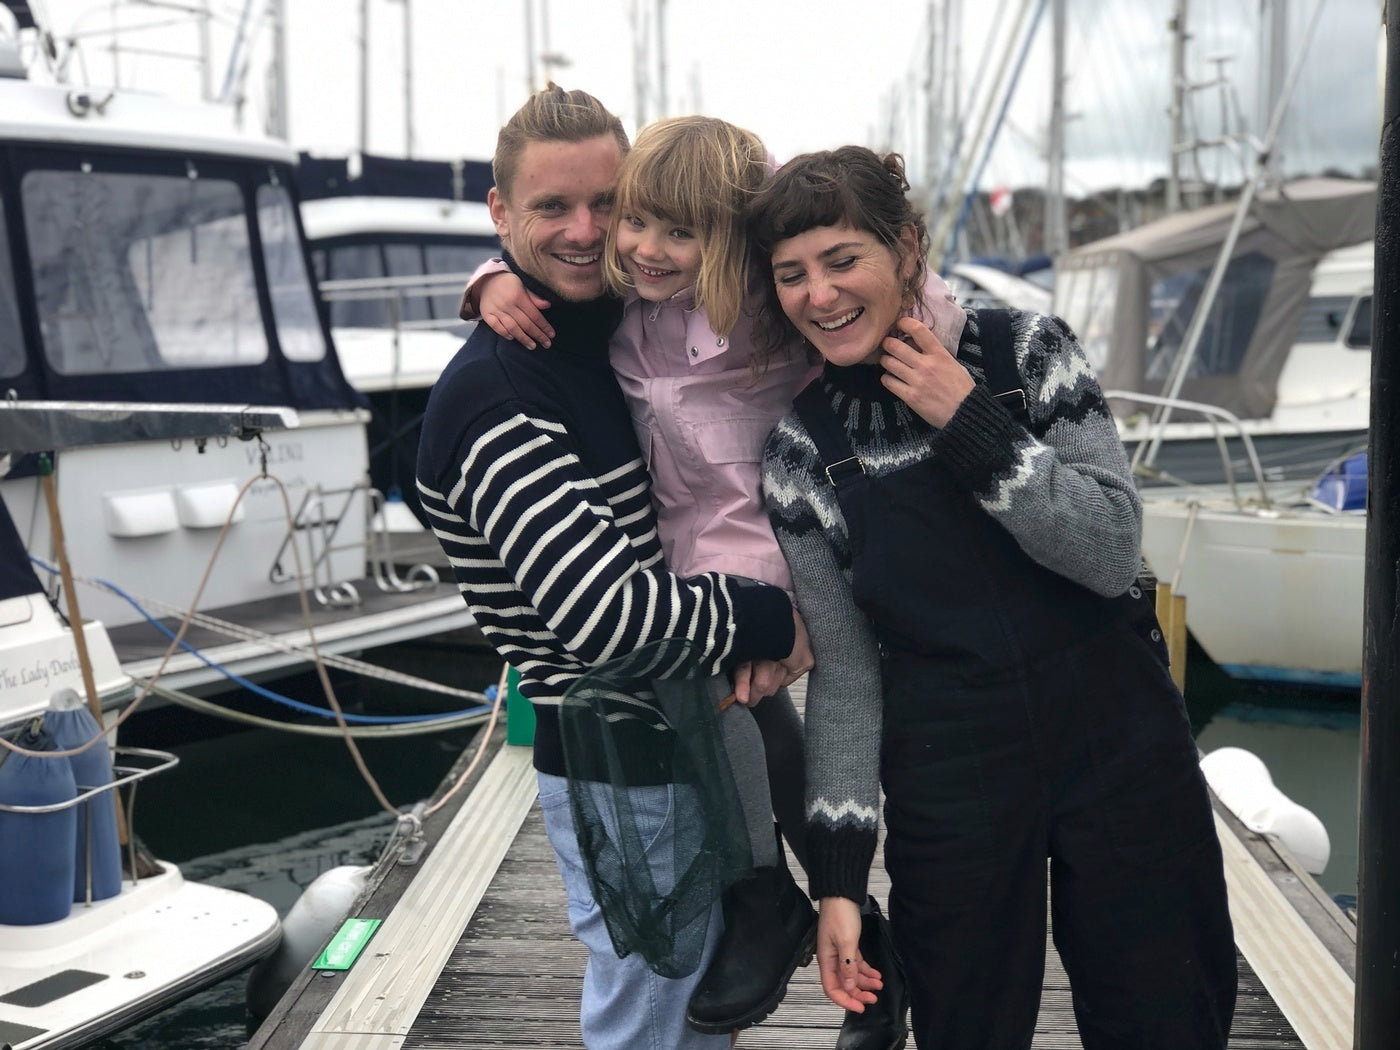 The Thompsons sharing smiles at the boatyard they currently call home